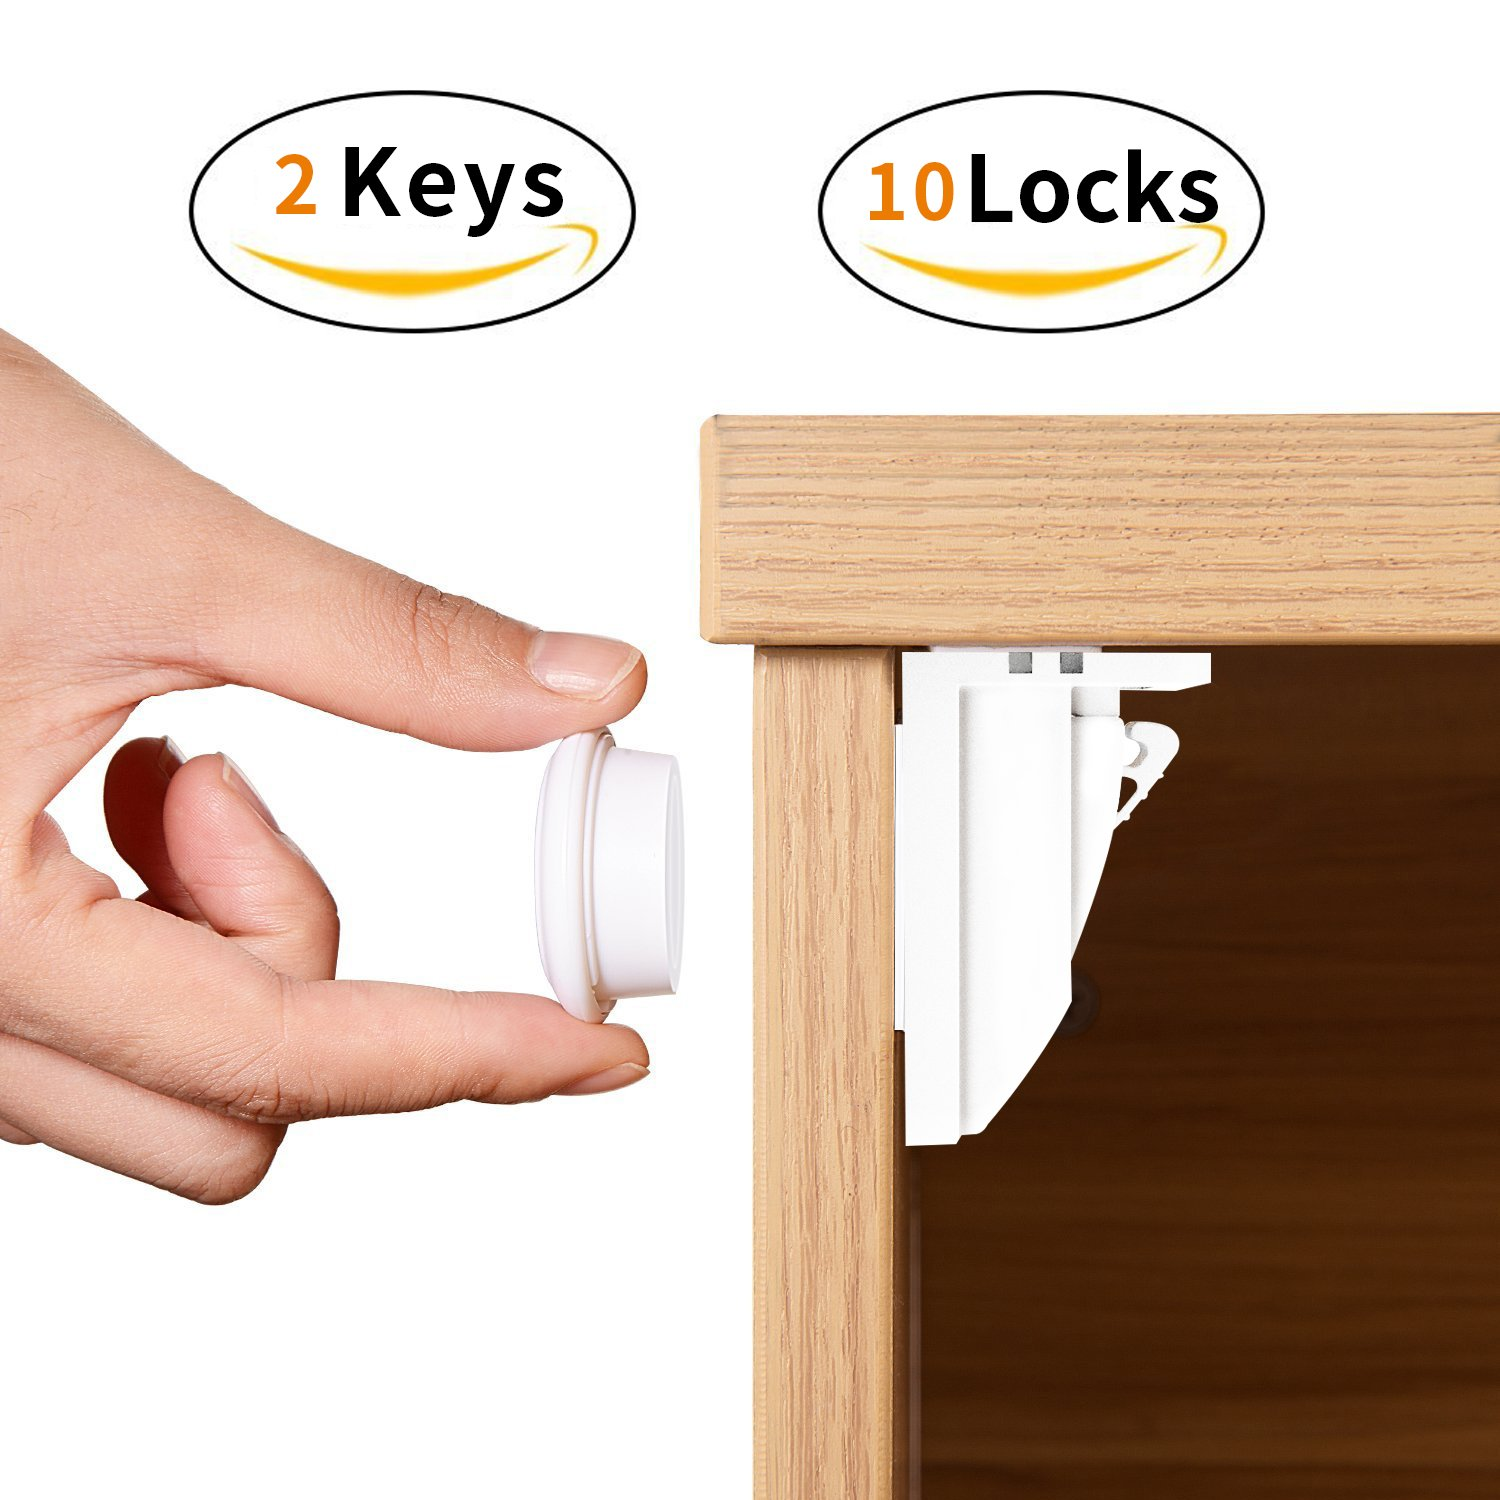 Baby Safety Magnetic Cabinet & Drawers Locks childproof Cupboard locking system No Tools Or Screws Needed- 3M Adhesive (10 Locks + 2 Keys)